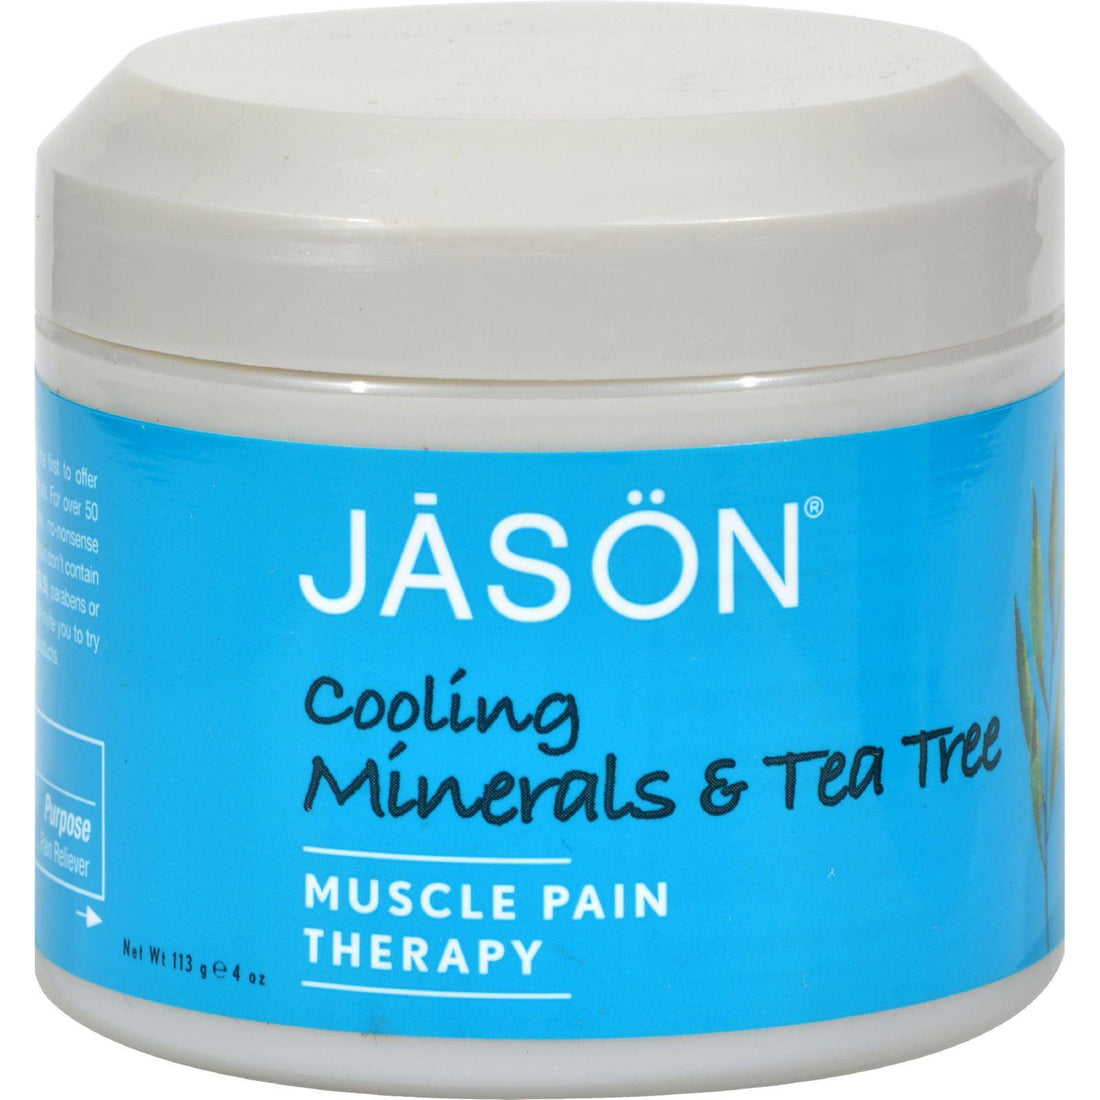 Mother Mantis: Jason Pure Natural Muscle Pain Therapy Cooling Minerals And Tea Tree - 4 Oz Jason Natural Products